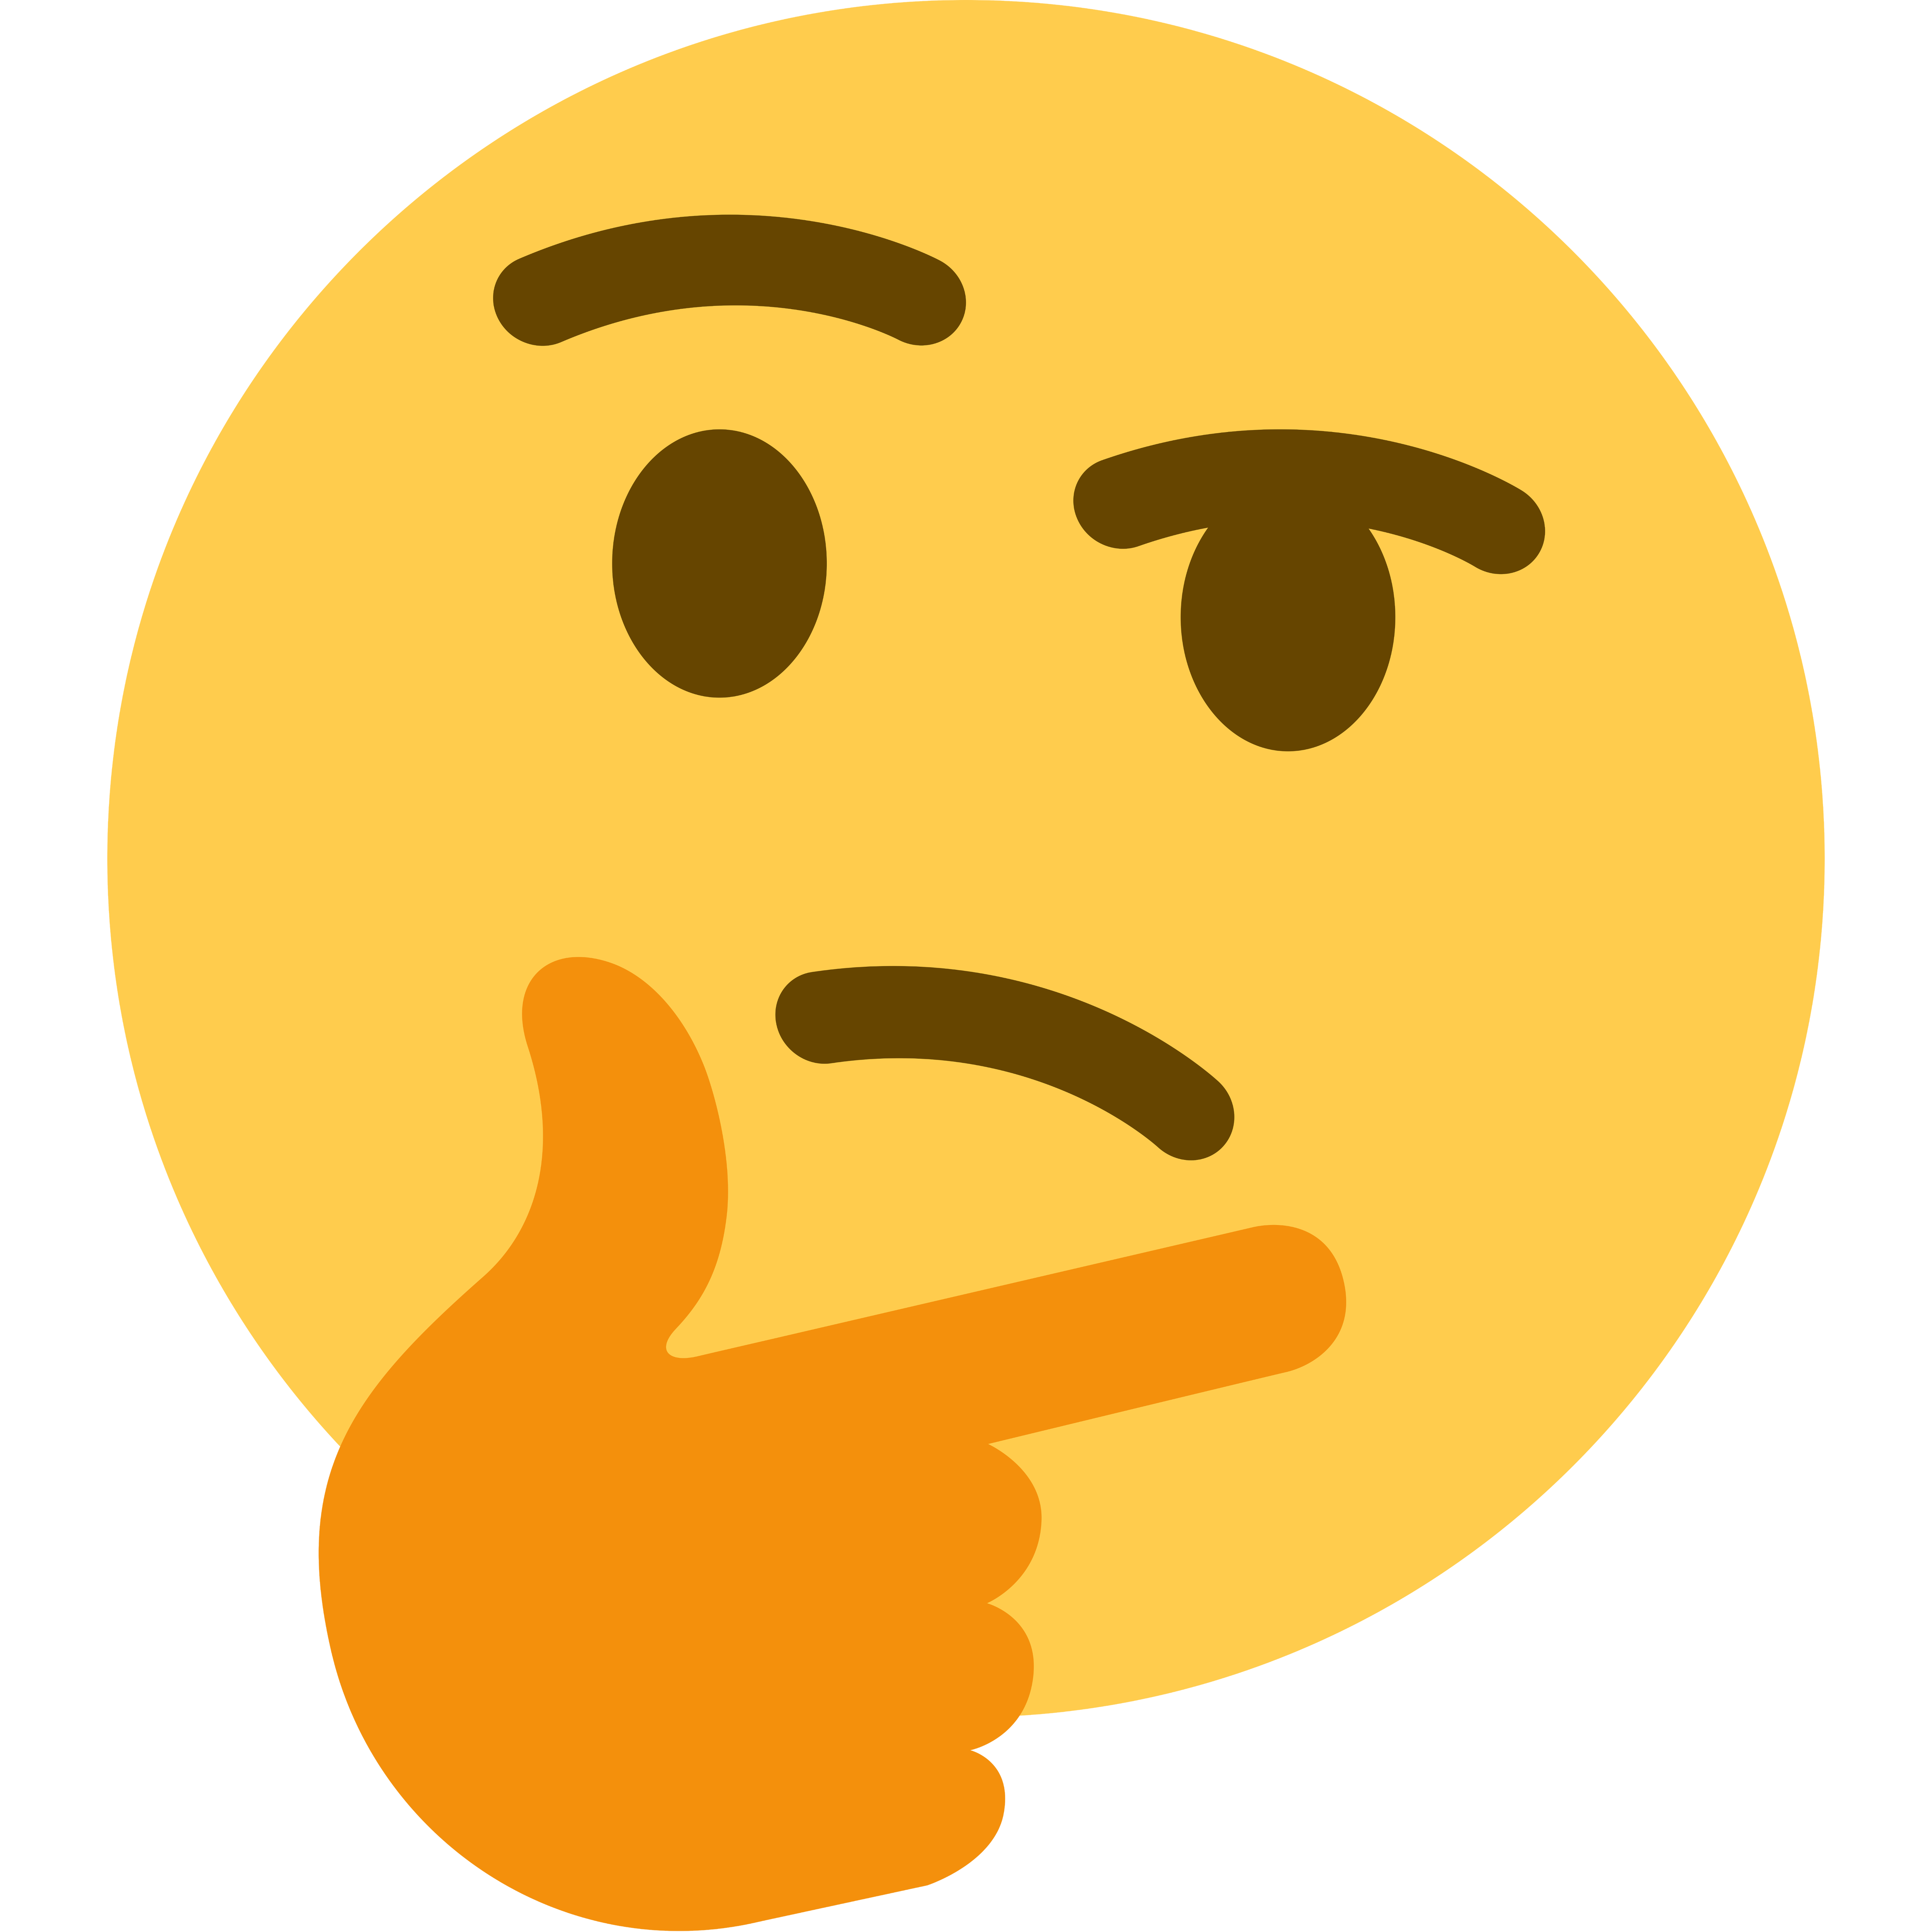 Super High Resolution Transparent Template Of The Twitter Variant Thinking Face Emoji Emoji Meme Emoji Meme Faces